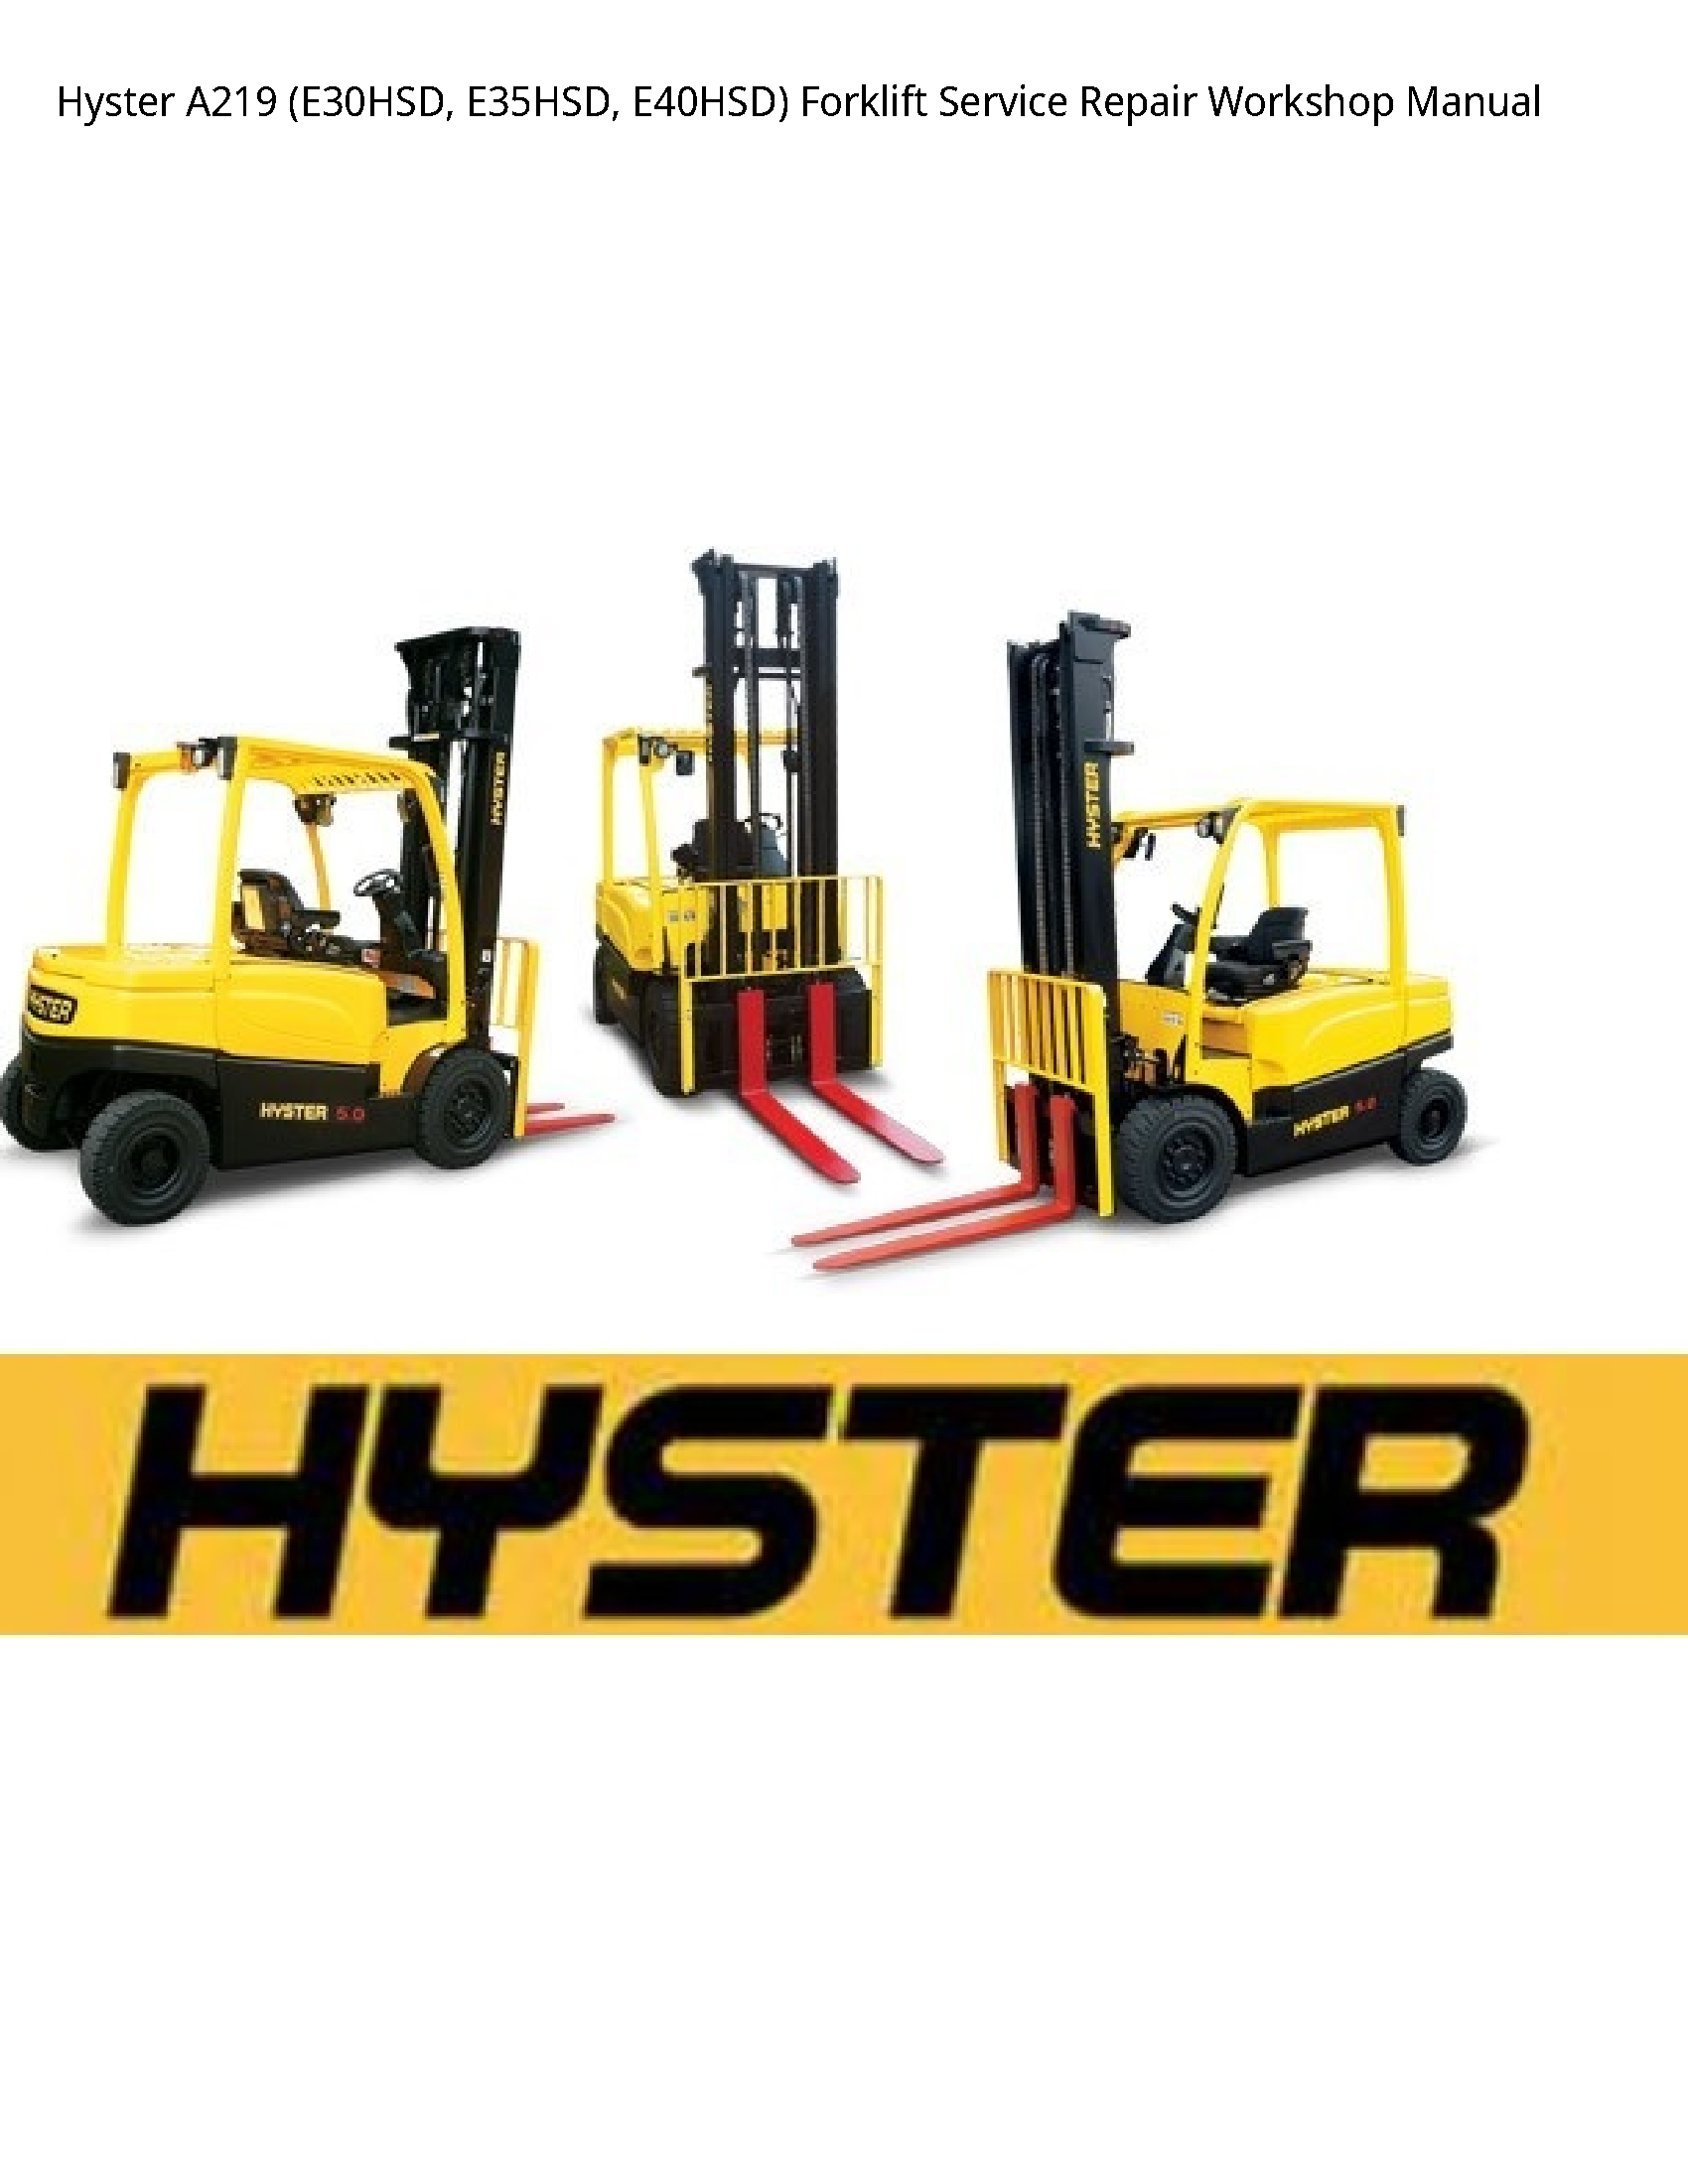 Hyster A219 Forklift manual